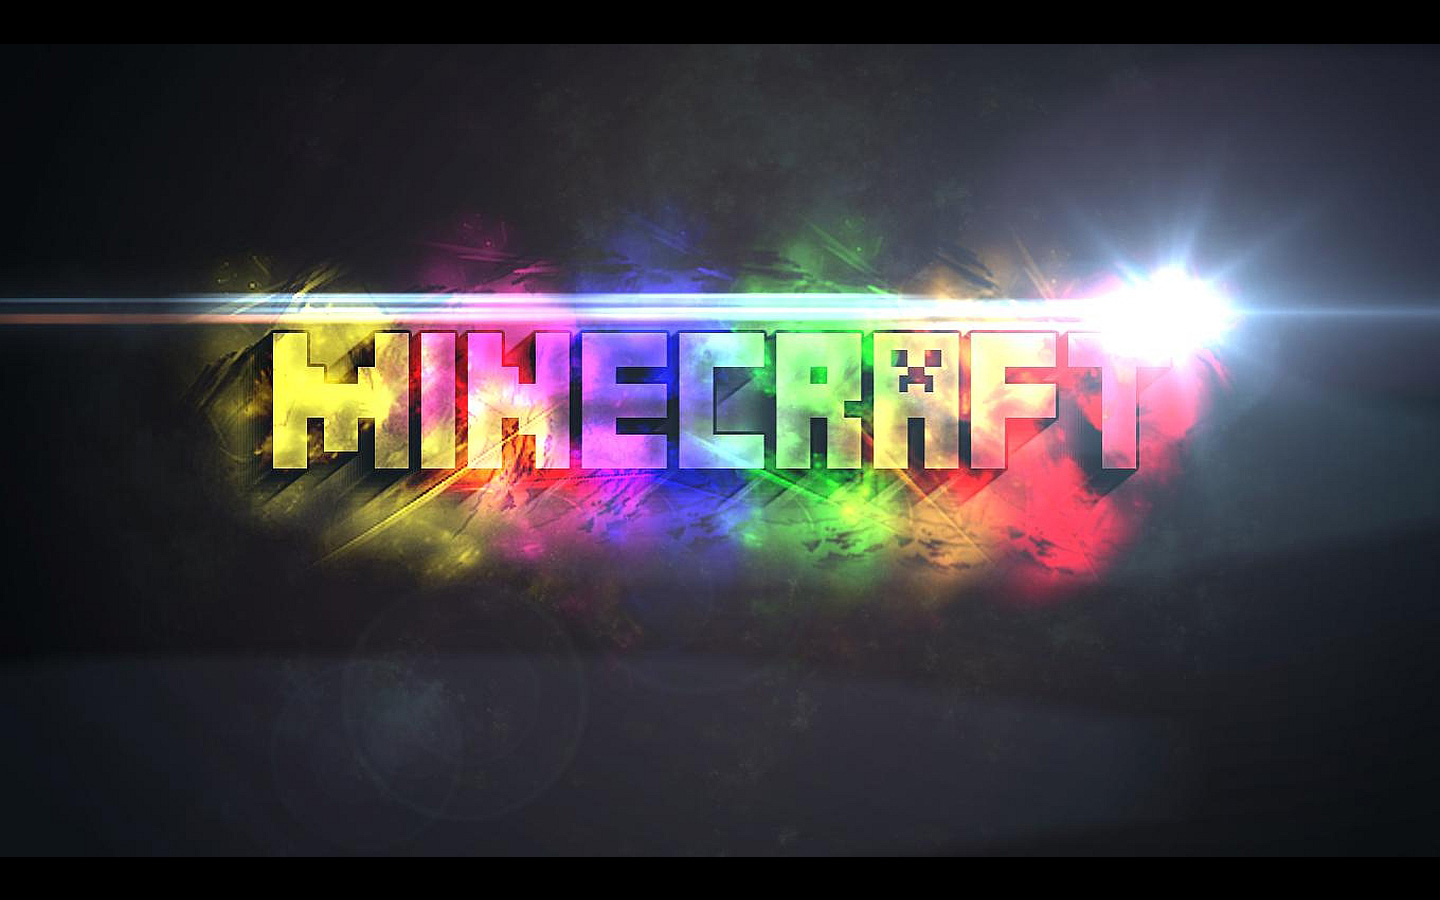 Minecraft Wallpaper Minecraft colorful name   Minecraft wallpapers 1440x900